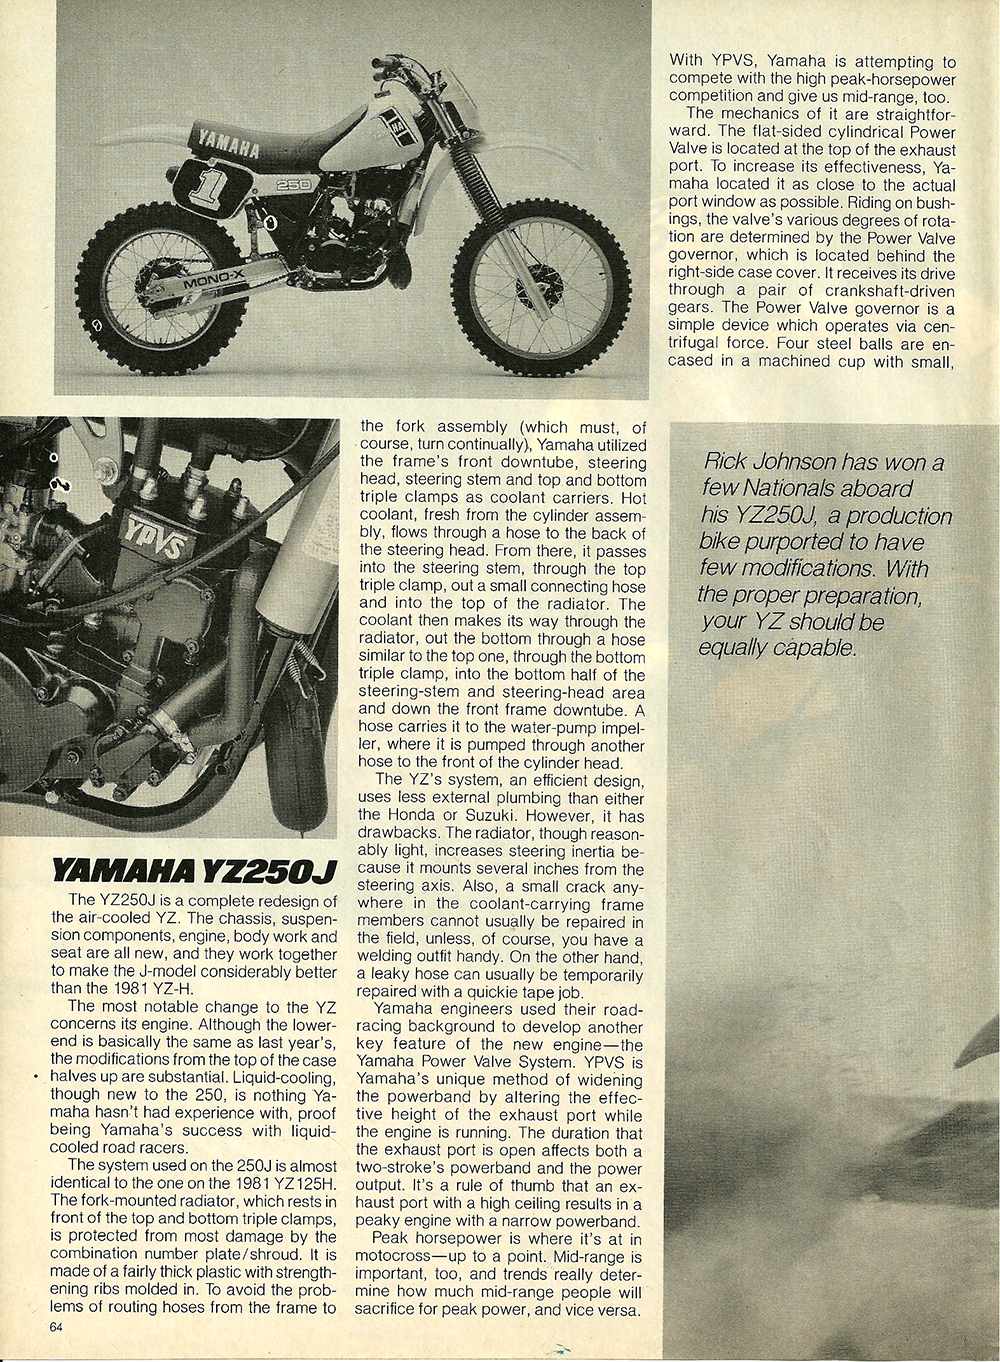 1982 Yamaha YZ250J road test 3.jpg